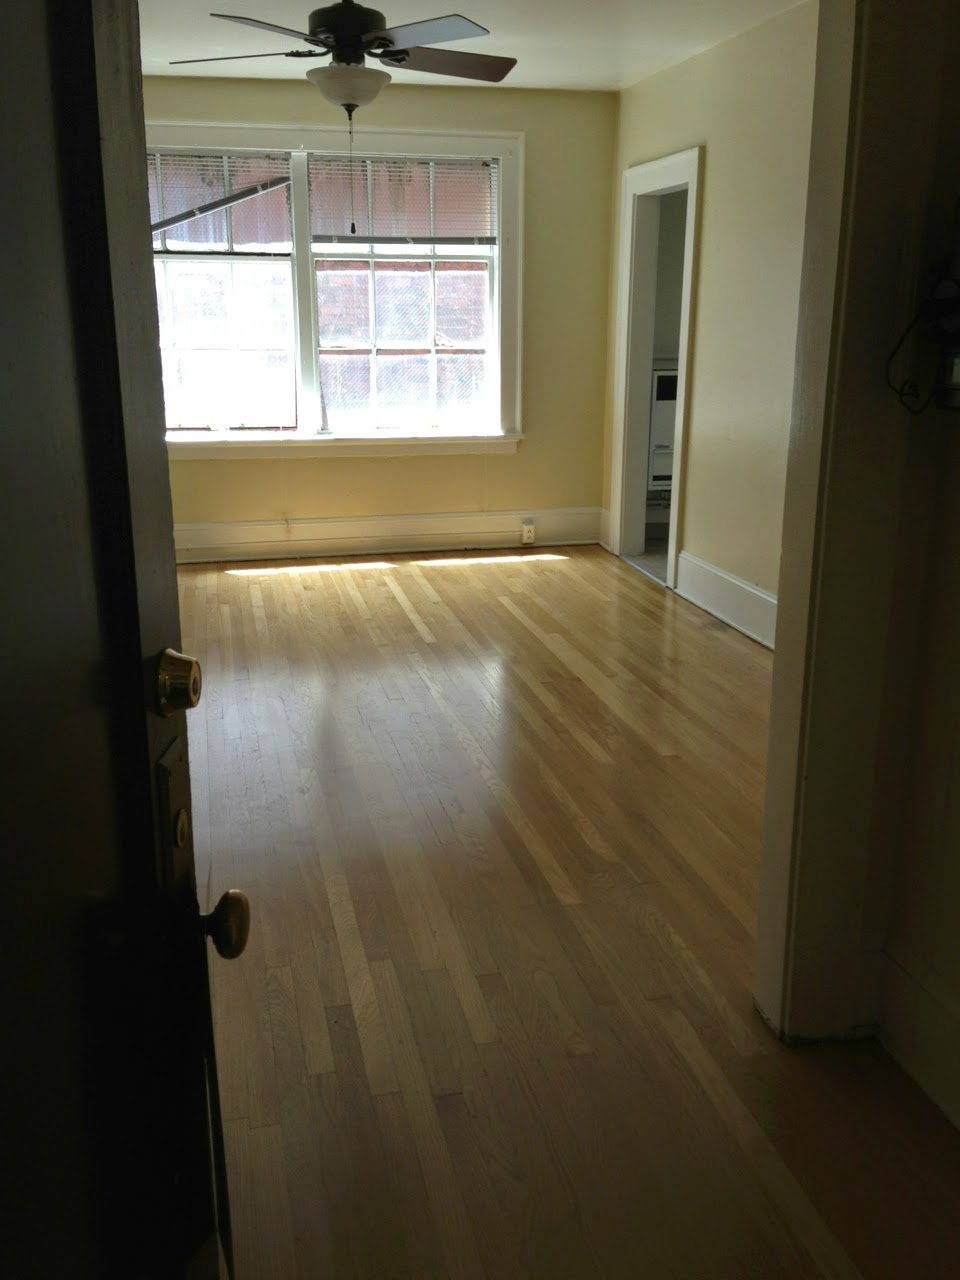 secondhand goods empty apartment before. Black Bedroom Furniture Sets. Home Design Ideas